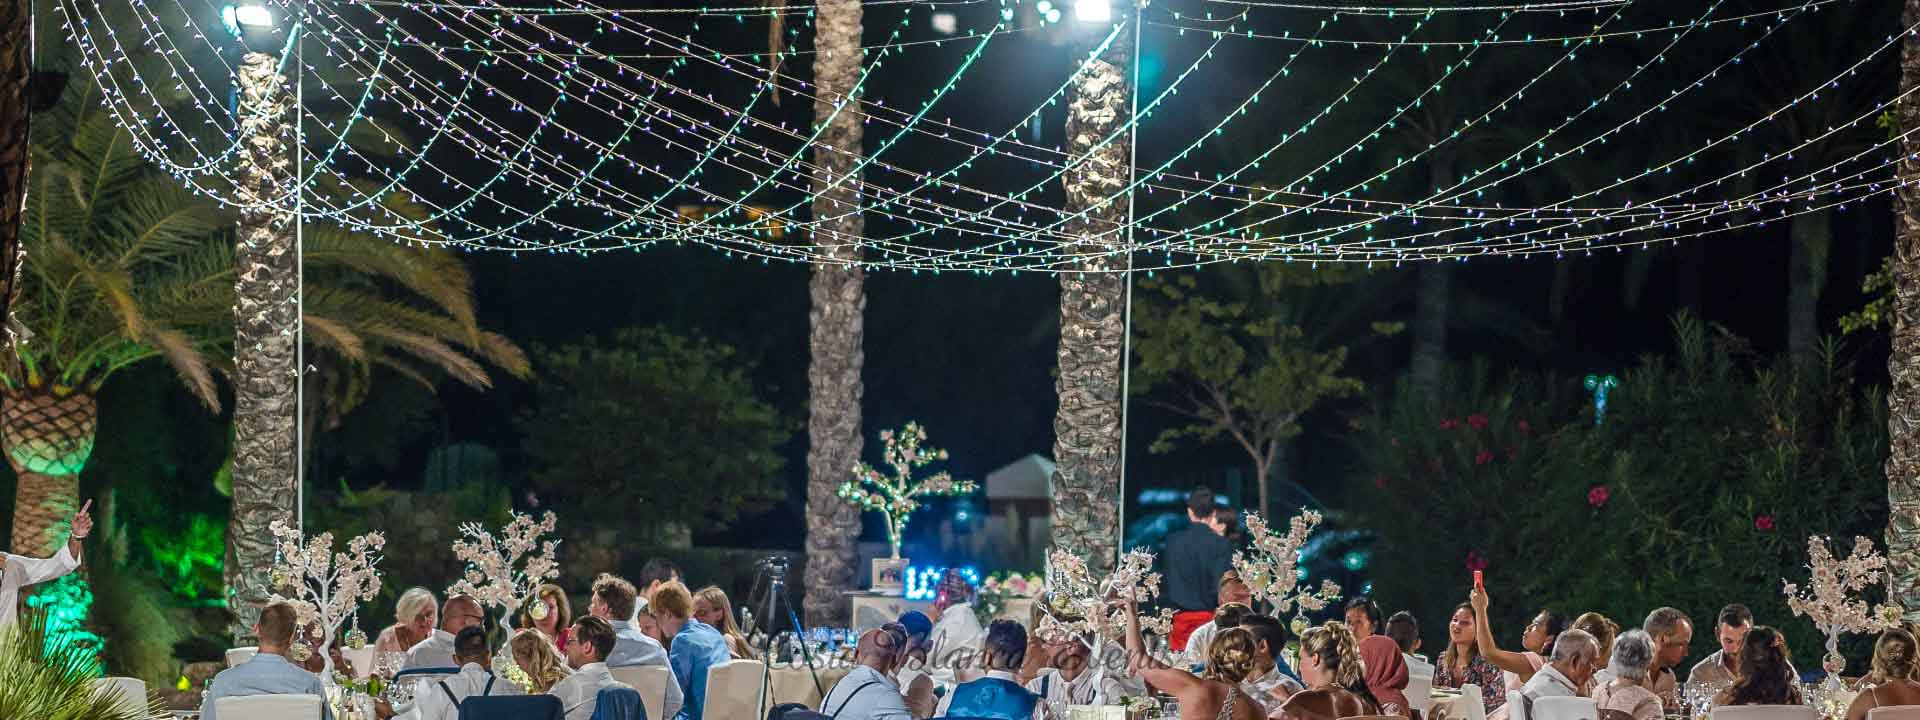 List of services for your wedding in Spain - example of fairy tale lighting